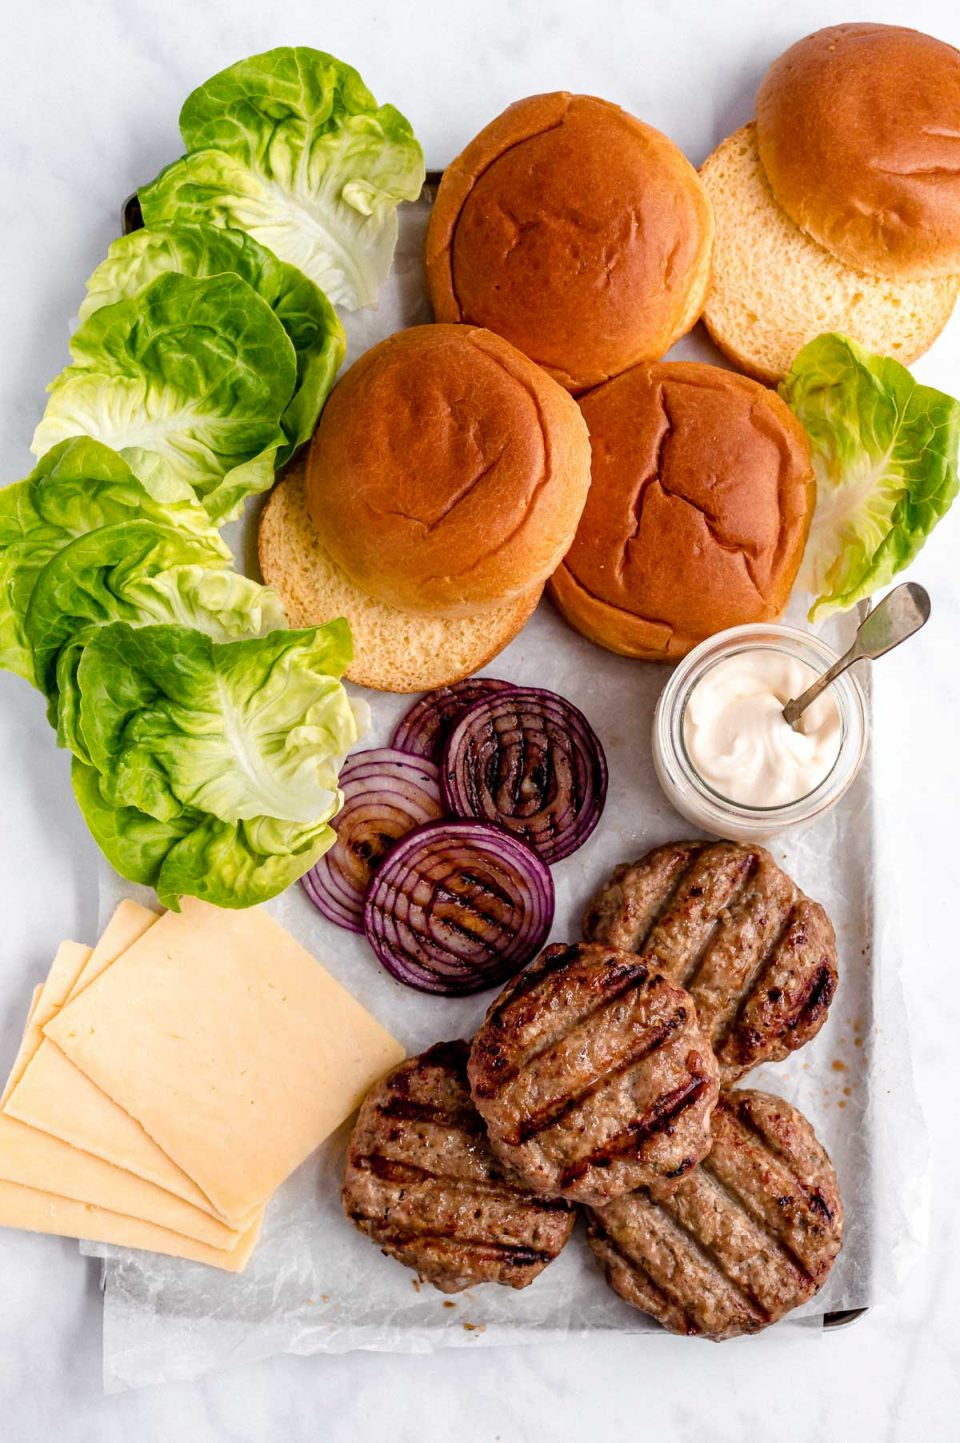 Grilled turkey burgers arranged on a platter with toppings - sliced cheese, leaf lettuce, grilled red onions & a jar of burger sauce.